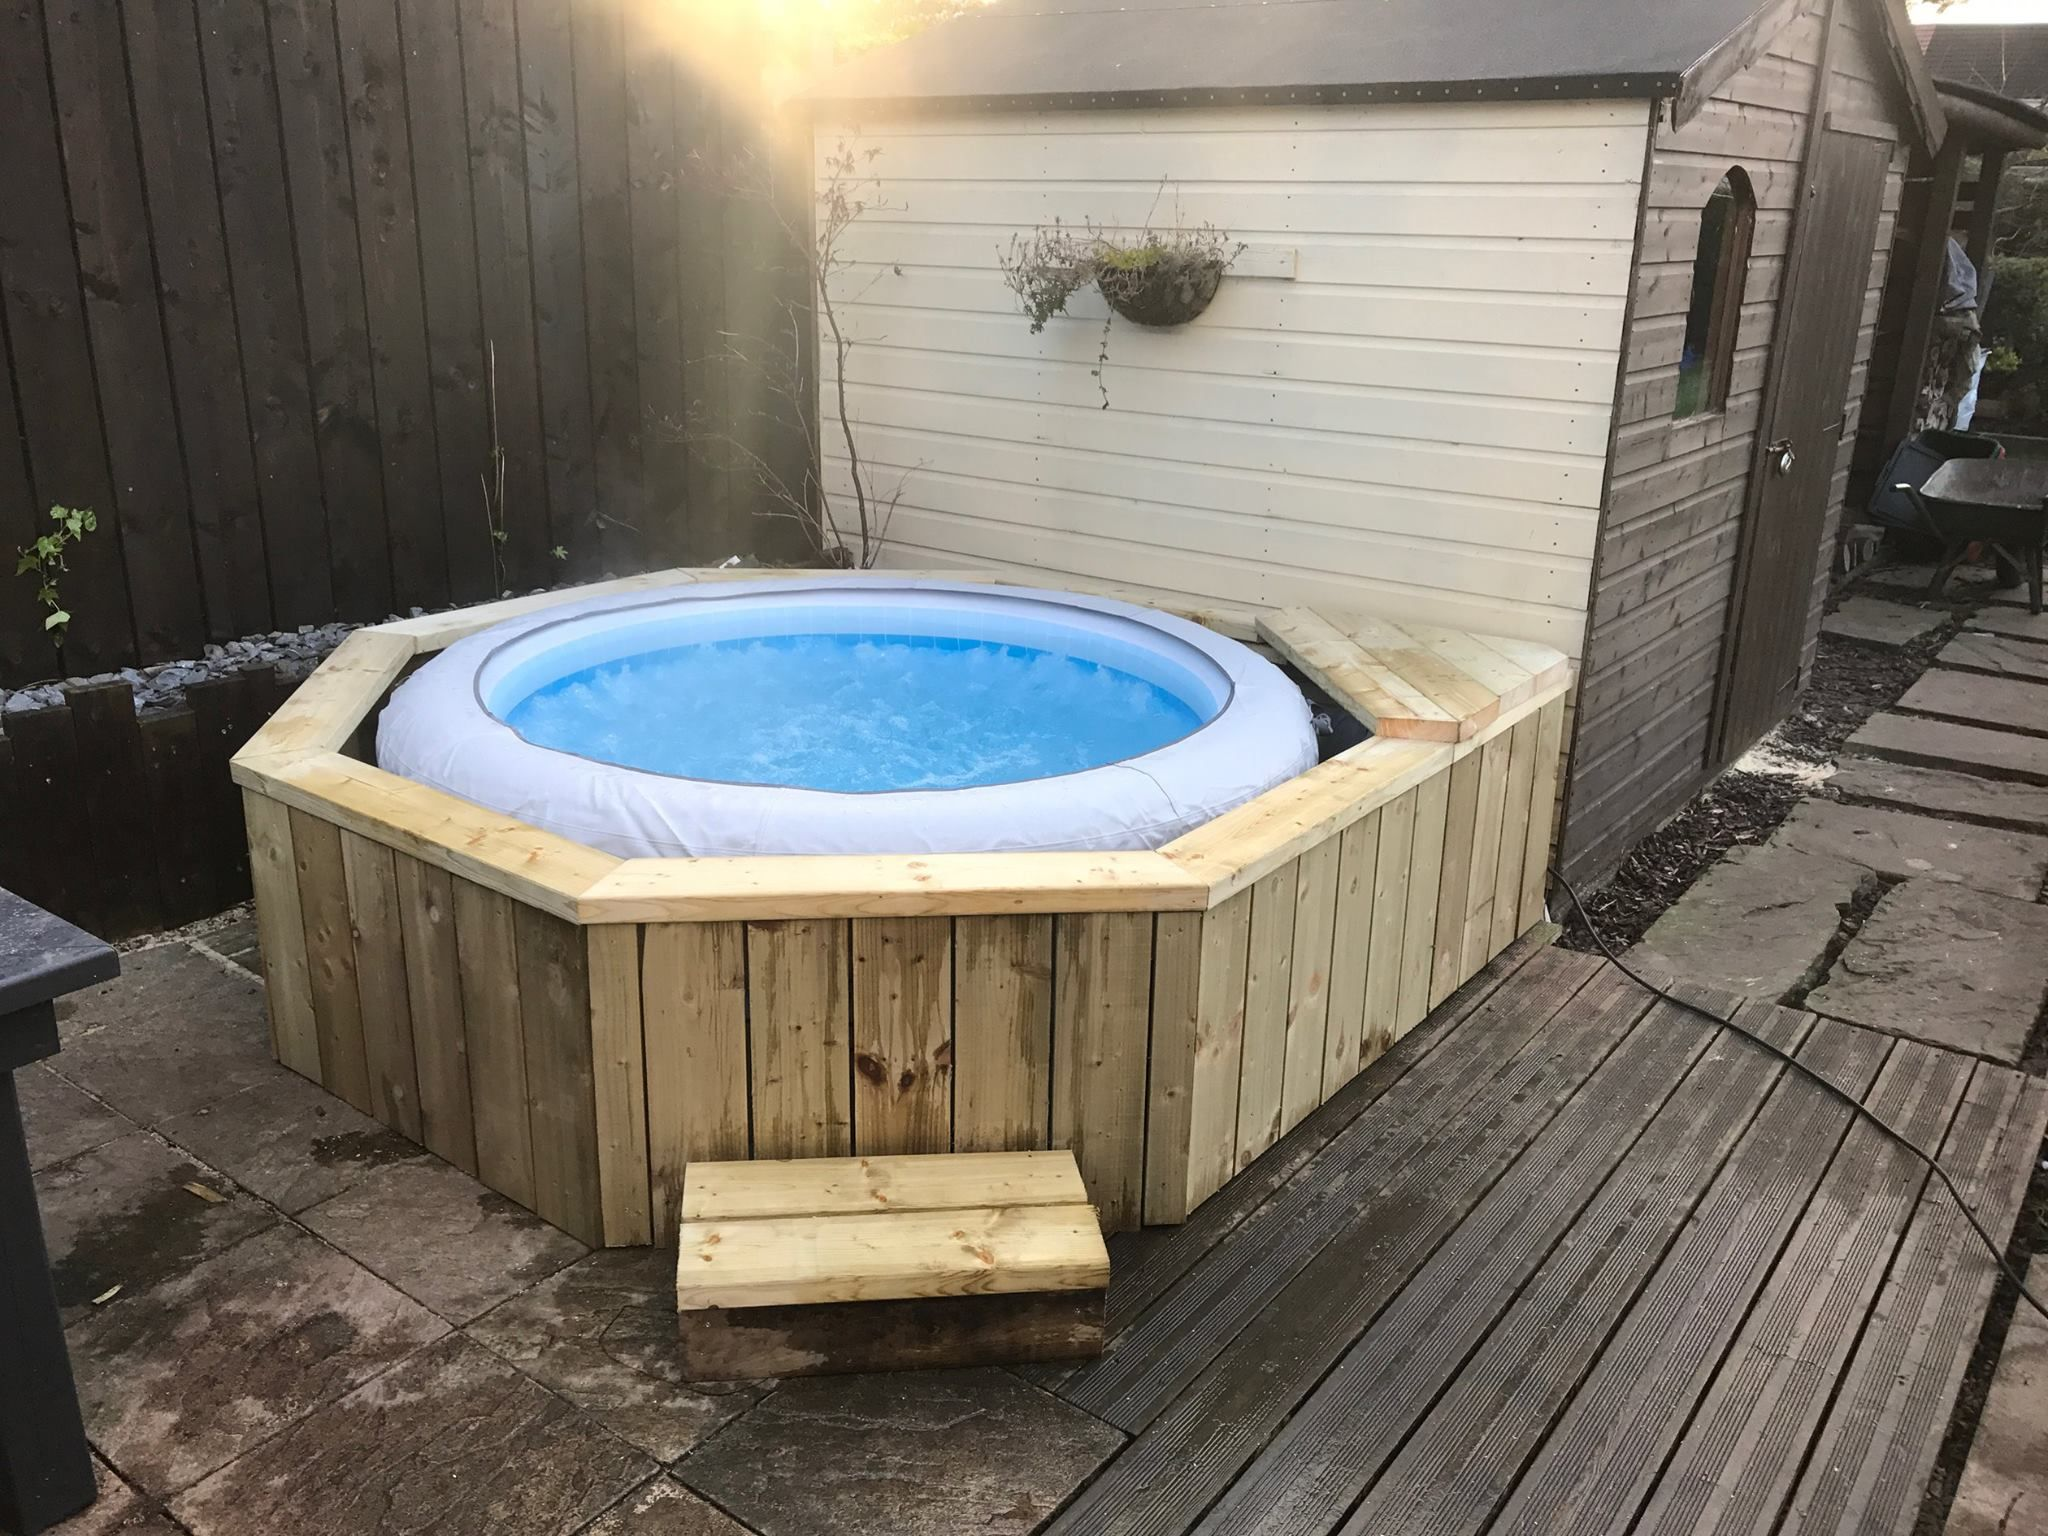 swim sarasota tubs cantabria portable utopia spas caldera maax for tub sale lifestyle hot